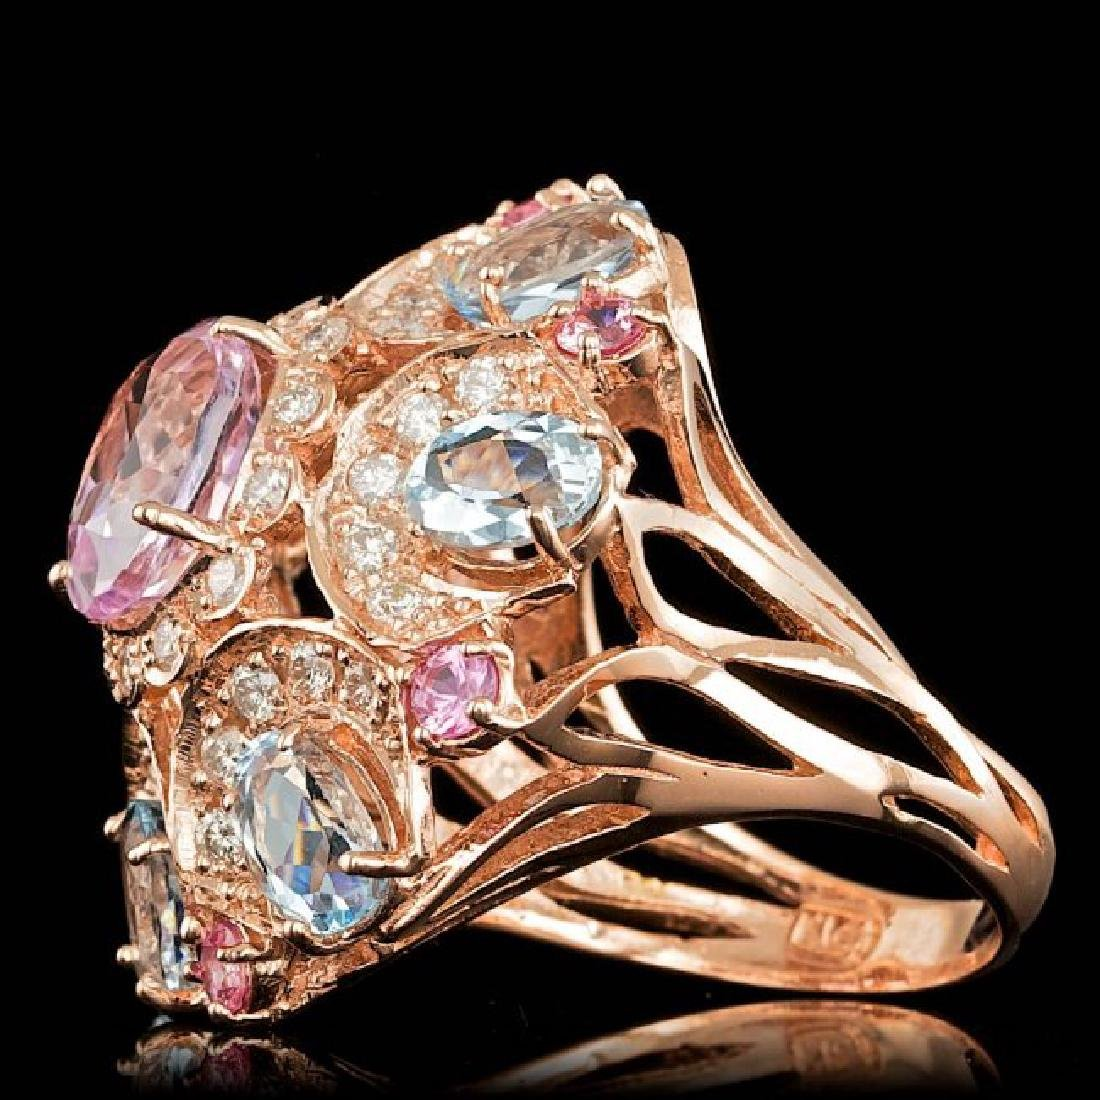 14k Rose Gold 3.50ct Kunzite 1.25ct Diamond Ring - 2